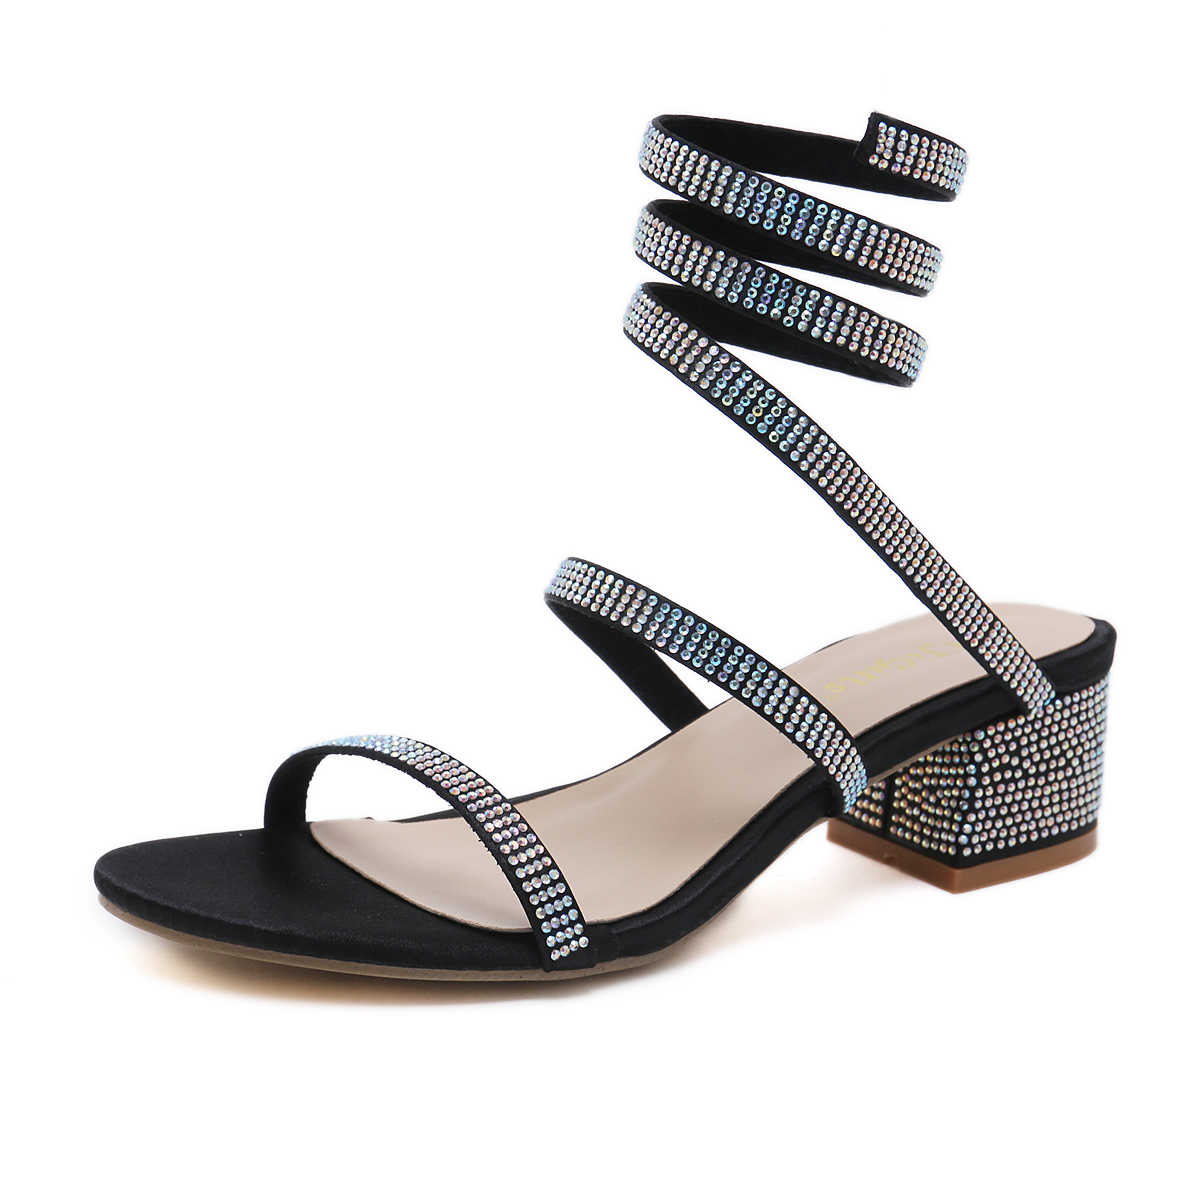 Classic Sexy Pointed Toe High Heels Women sandals's main photo